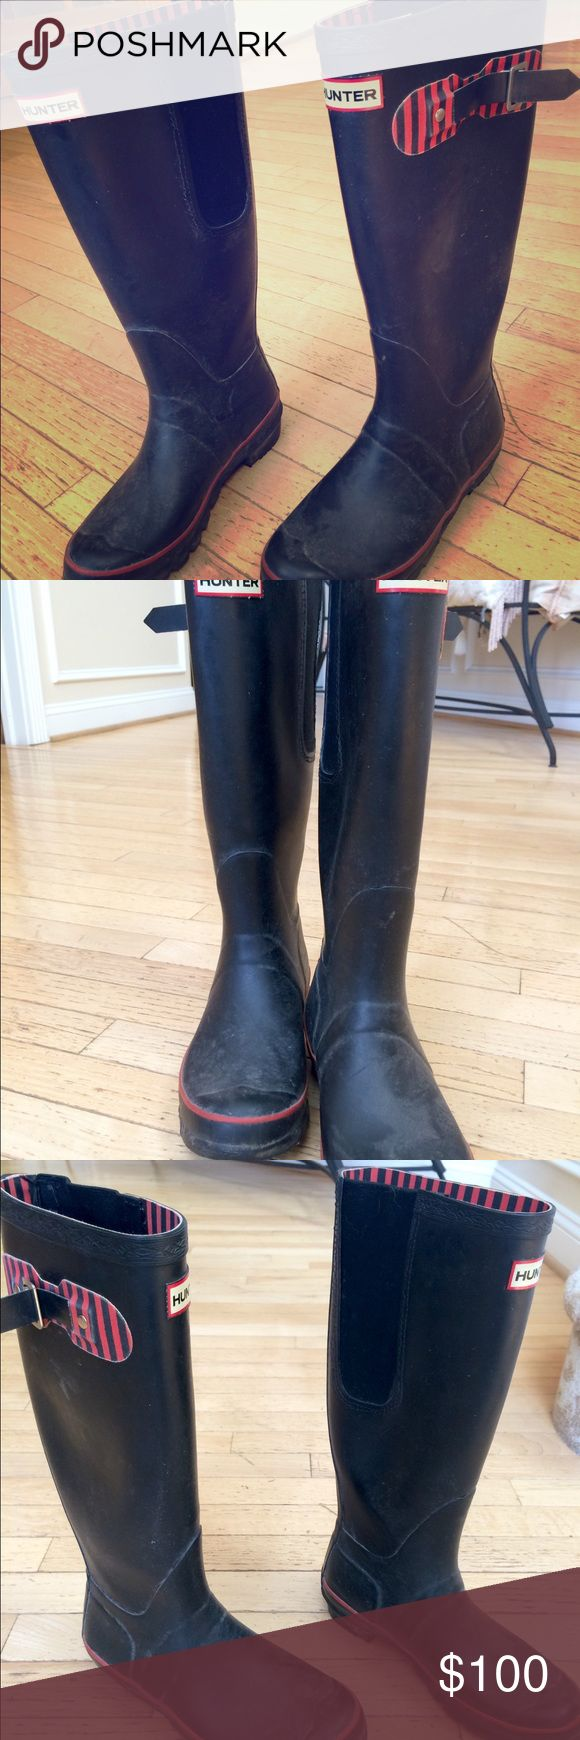 Women's Hunter Boots Black Women's Hunter Boots, Black, Size 7, they have a gusset (an elastic buckle to accommodate larger calves). $100 or best offer! Hunter Boots Shoes Winter & Rain Boots